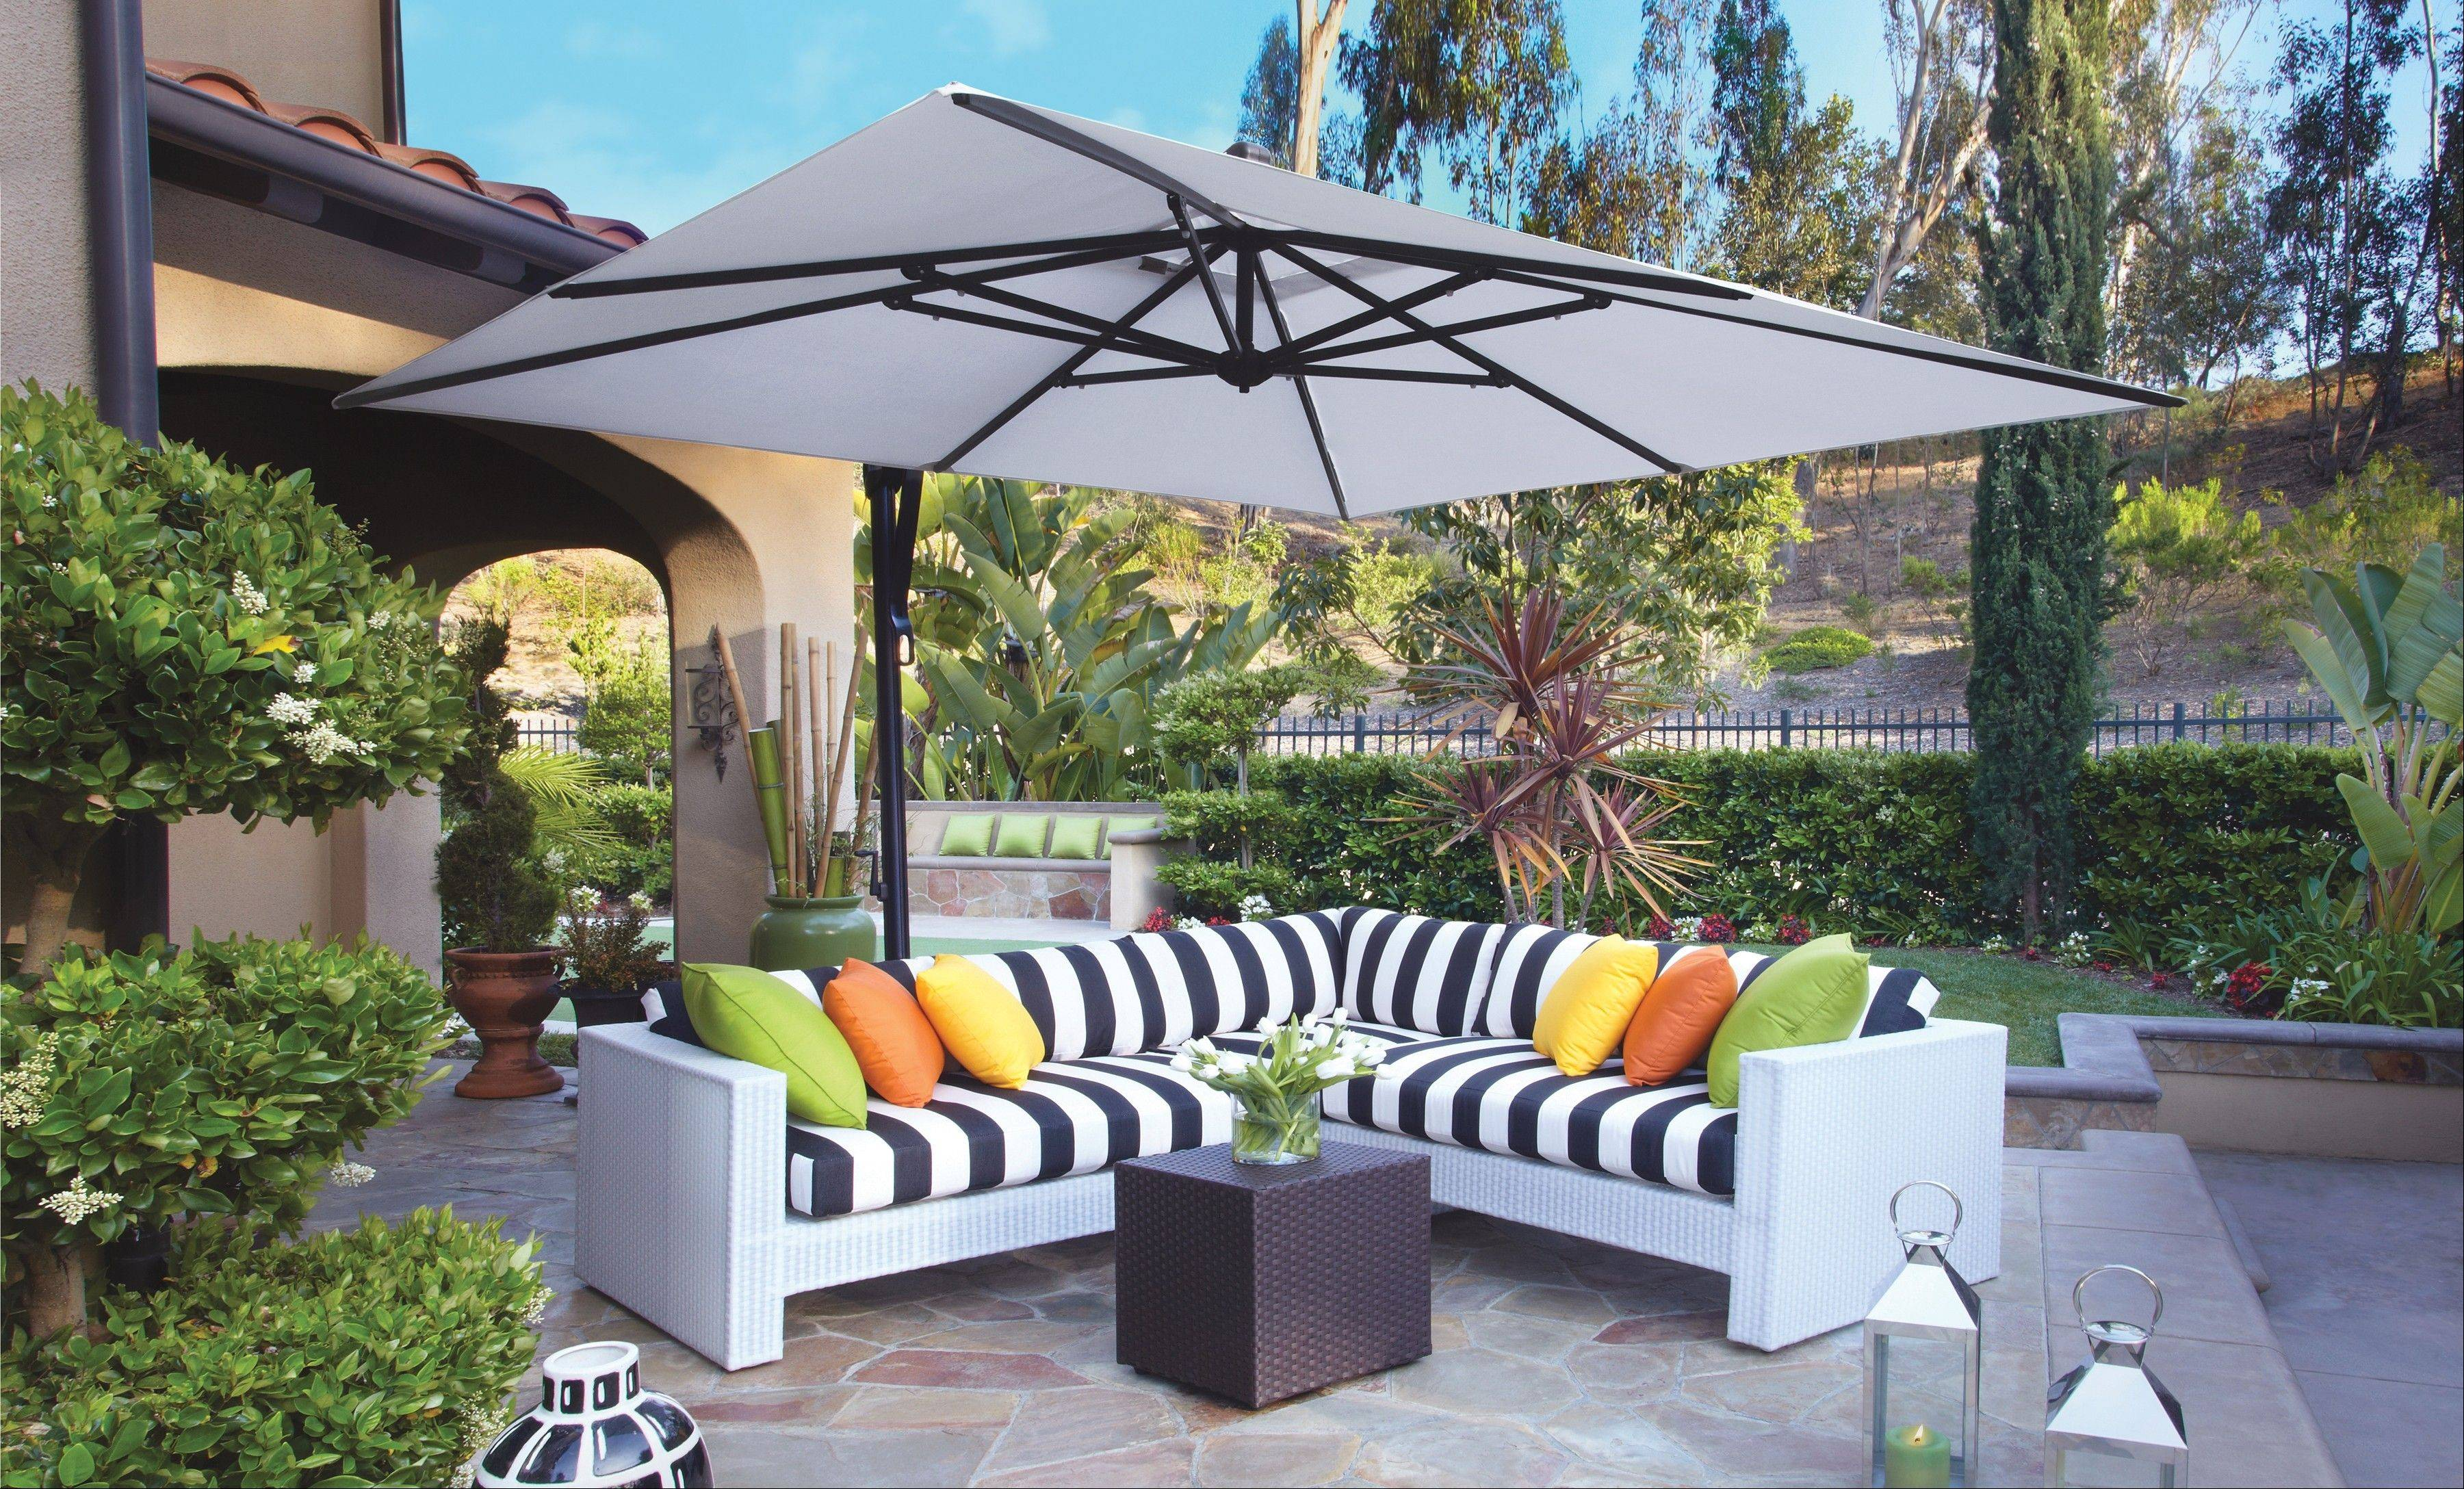 Some of the more luxurious patio seating arrangements available now utilize cushions made of Sunbrella fabric, which dries very quickly and stands up to inclement weather.